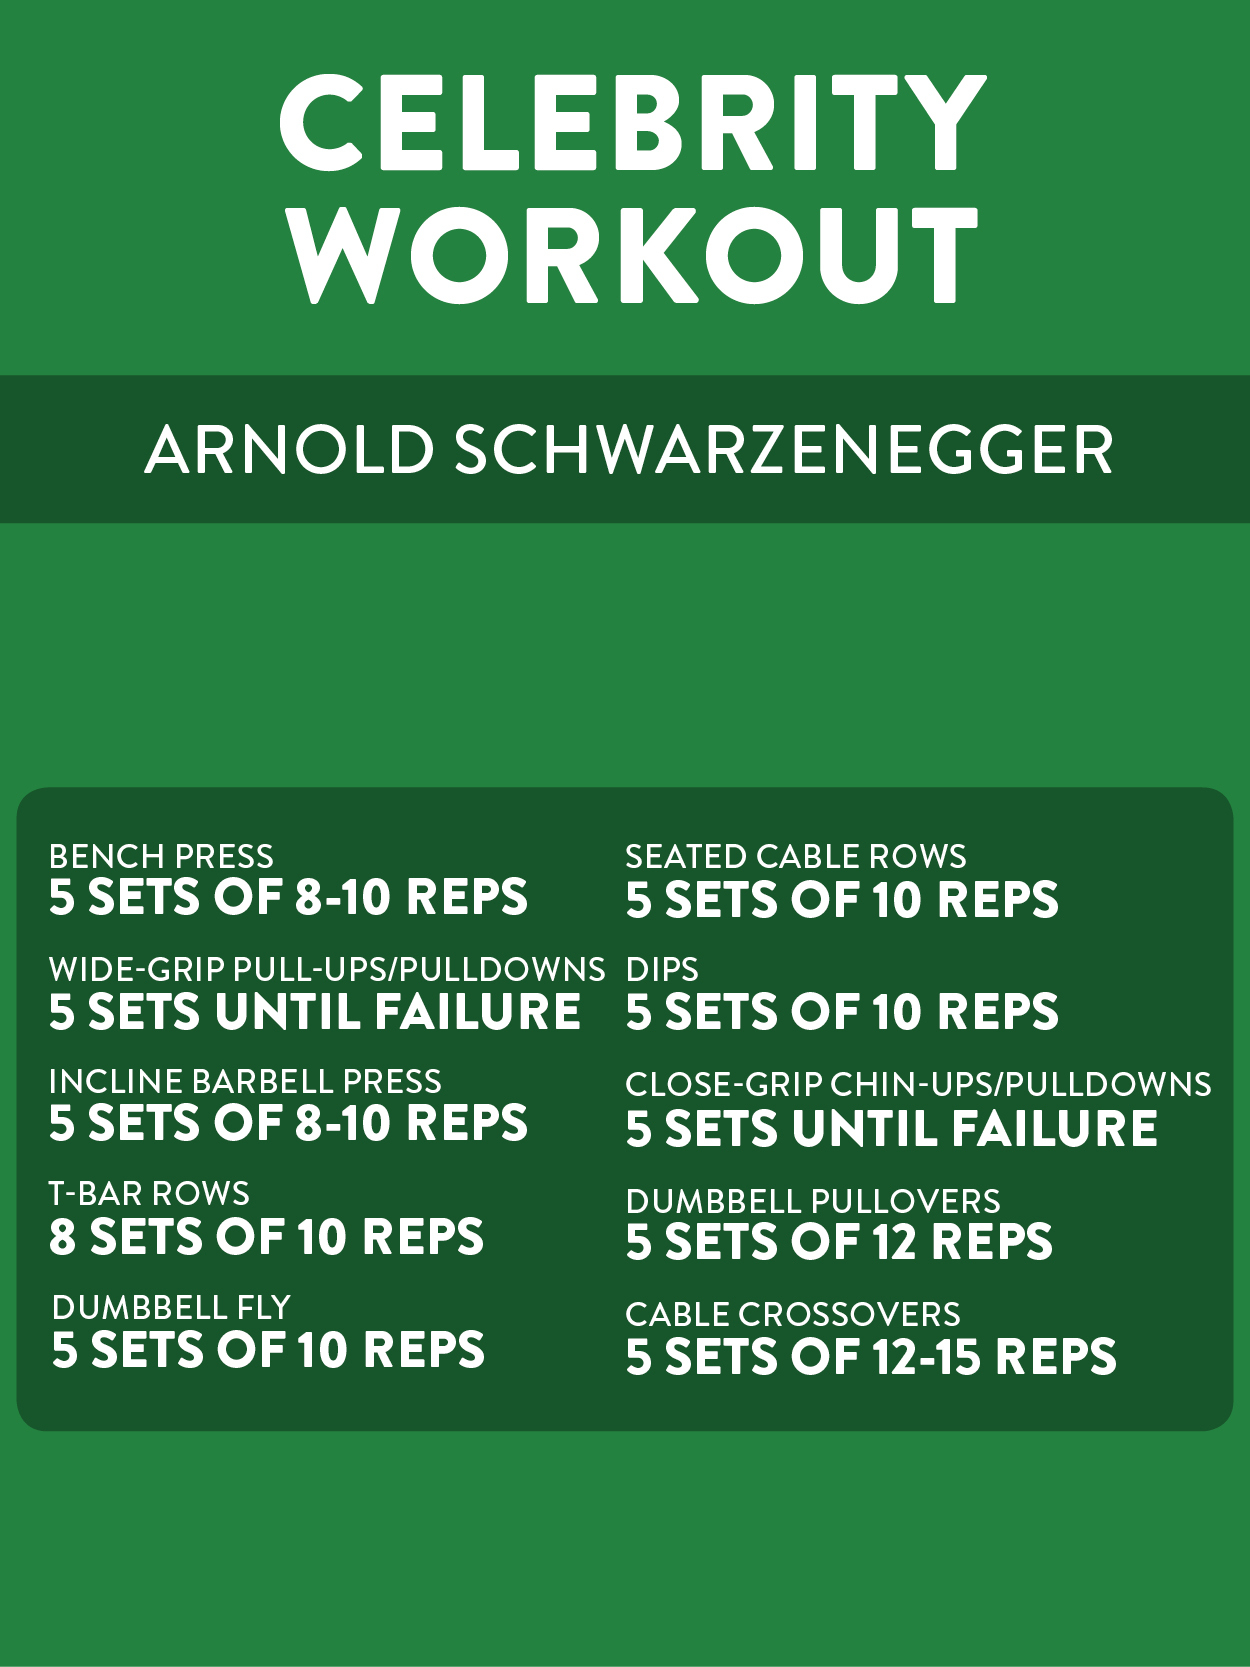 Arnold Schwarzenegger's Chest and Back Workout -